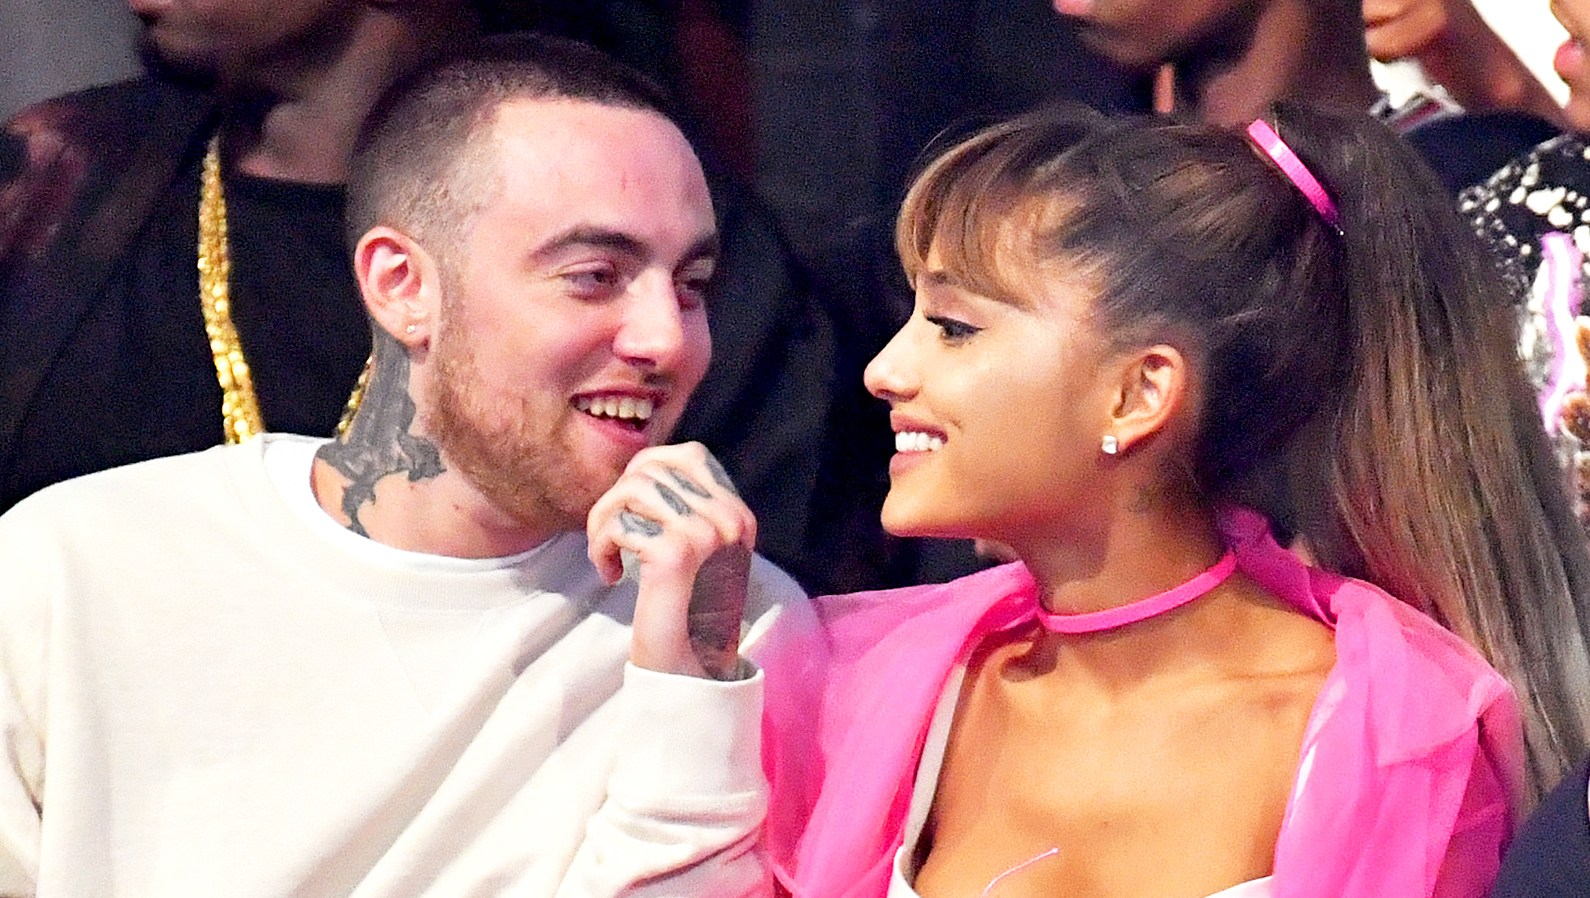 Mac Miller and Ariana Grande attend the 2016 MTV Video Music Awards at Madison Square Garden in New York City.